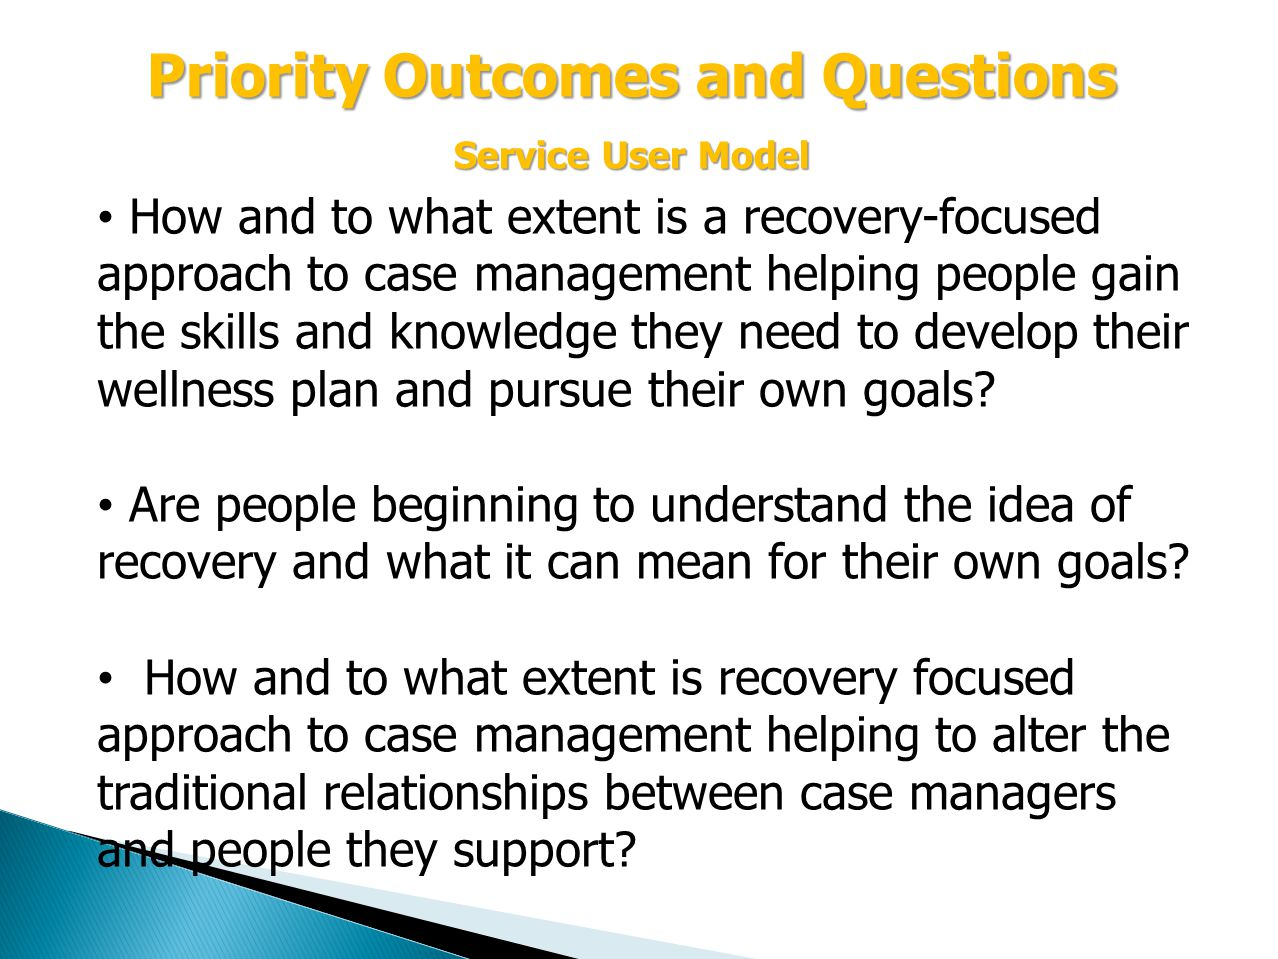 How and to what extent is a recovery-focused approach to case management helping people gain the skills and knowledge they need to develop their wellness plan and pursue their own goals.